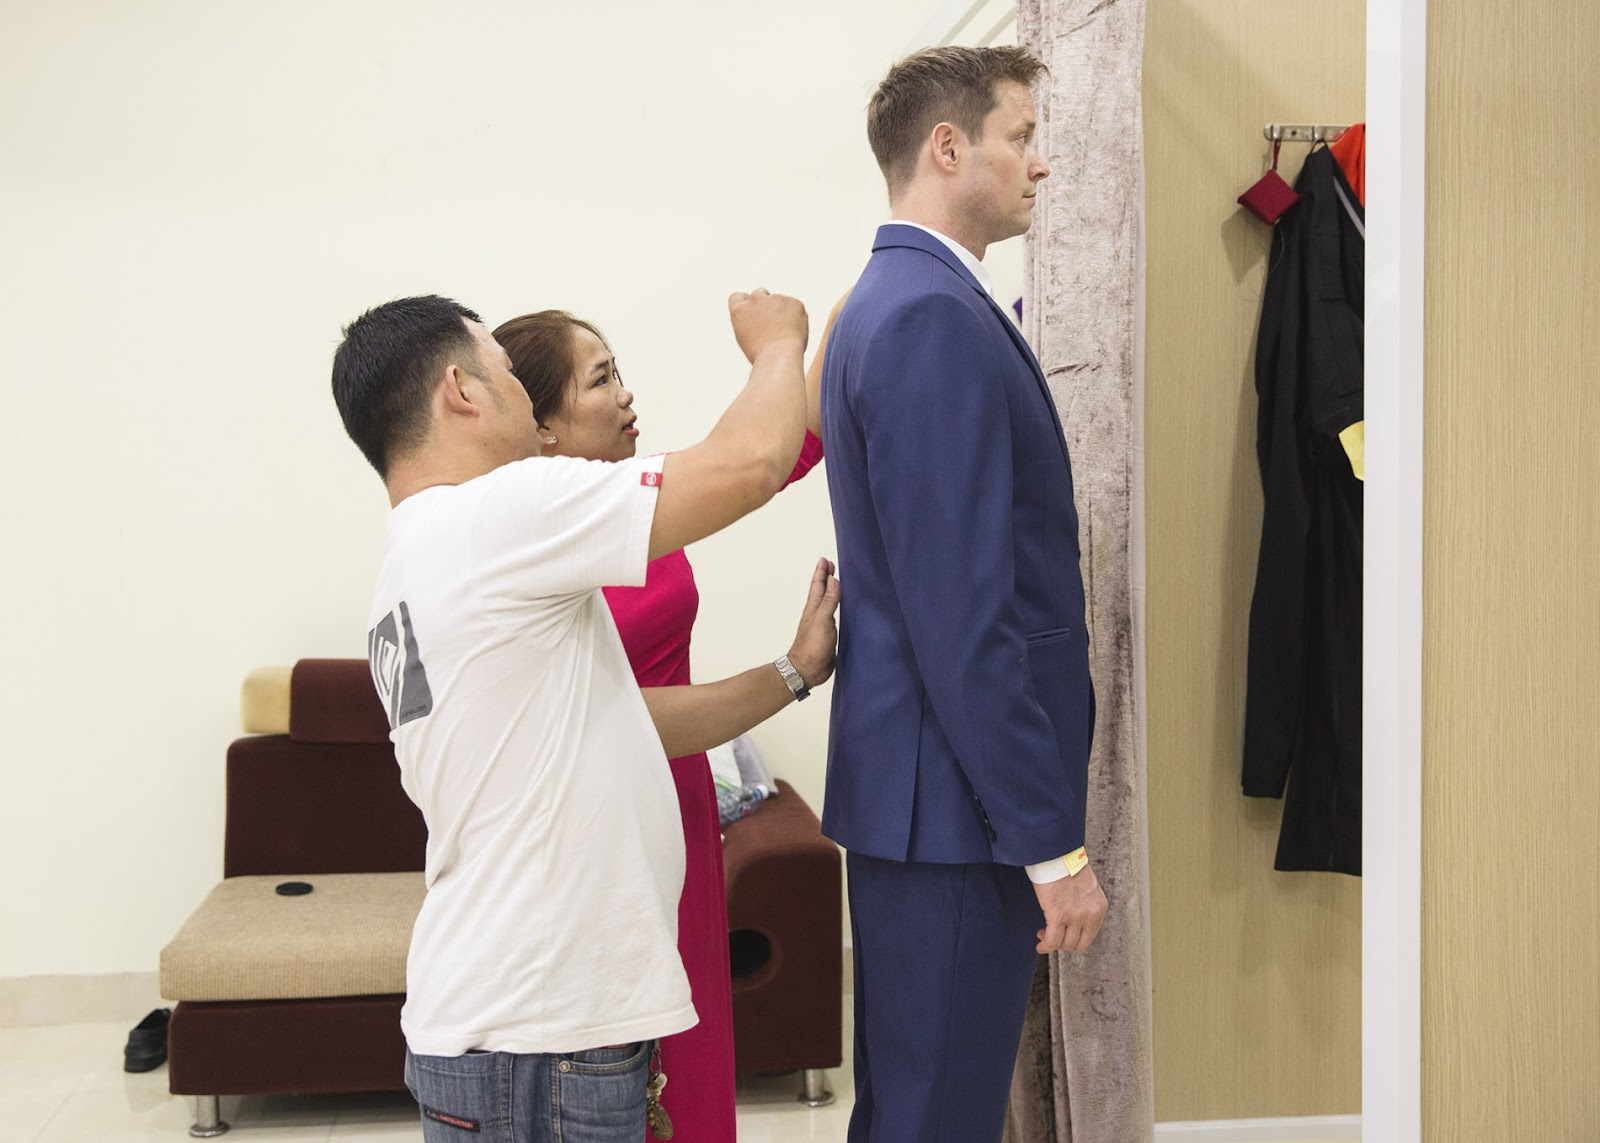 fitting a suit at Bebe.